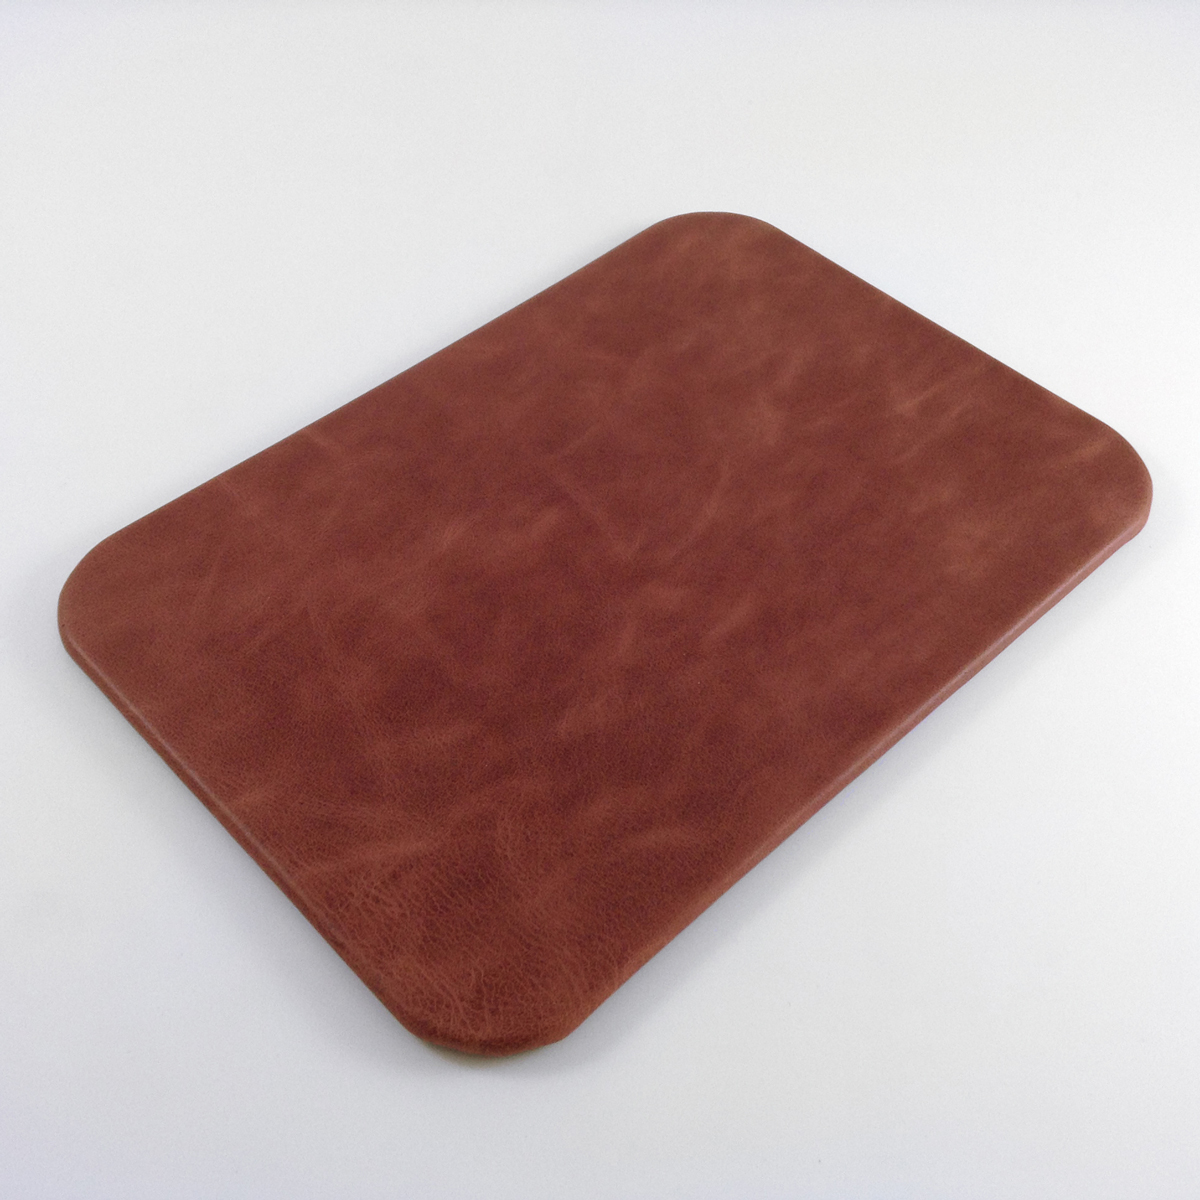 Red Vintage Leather Desk Pad: Distressed Genuine Leather ...